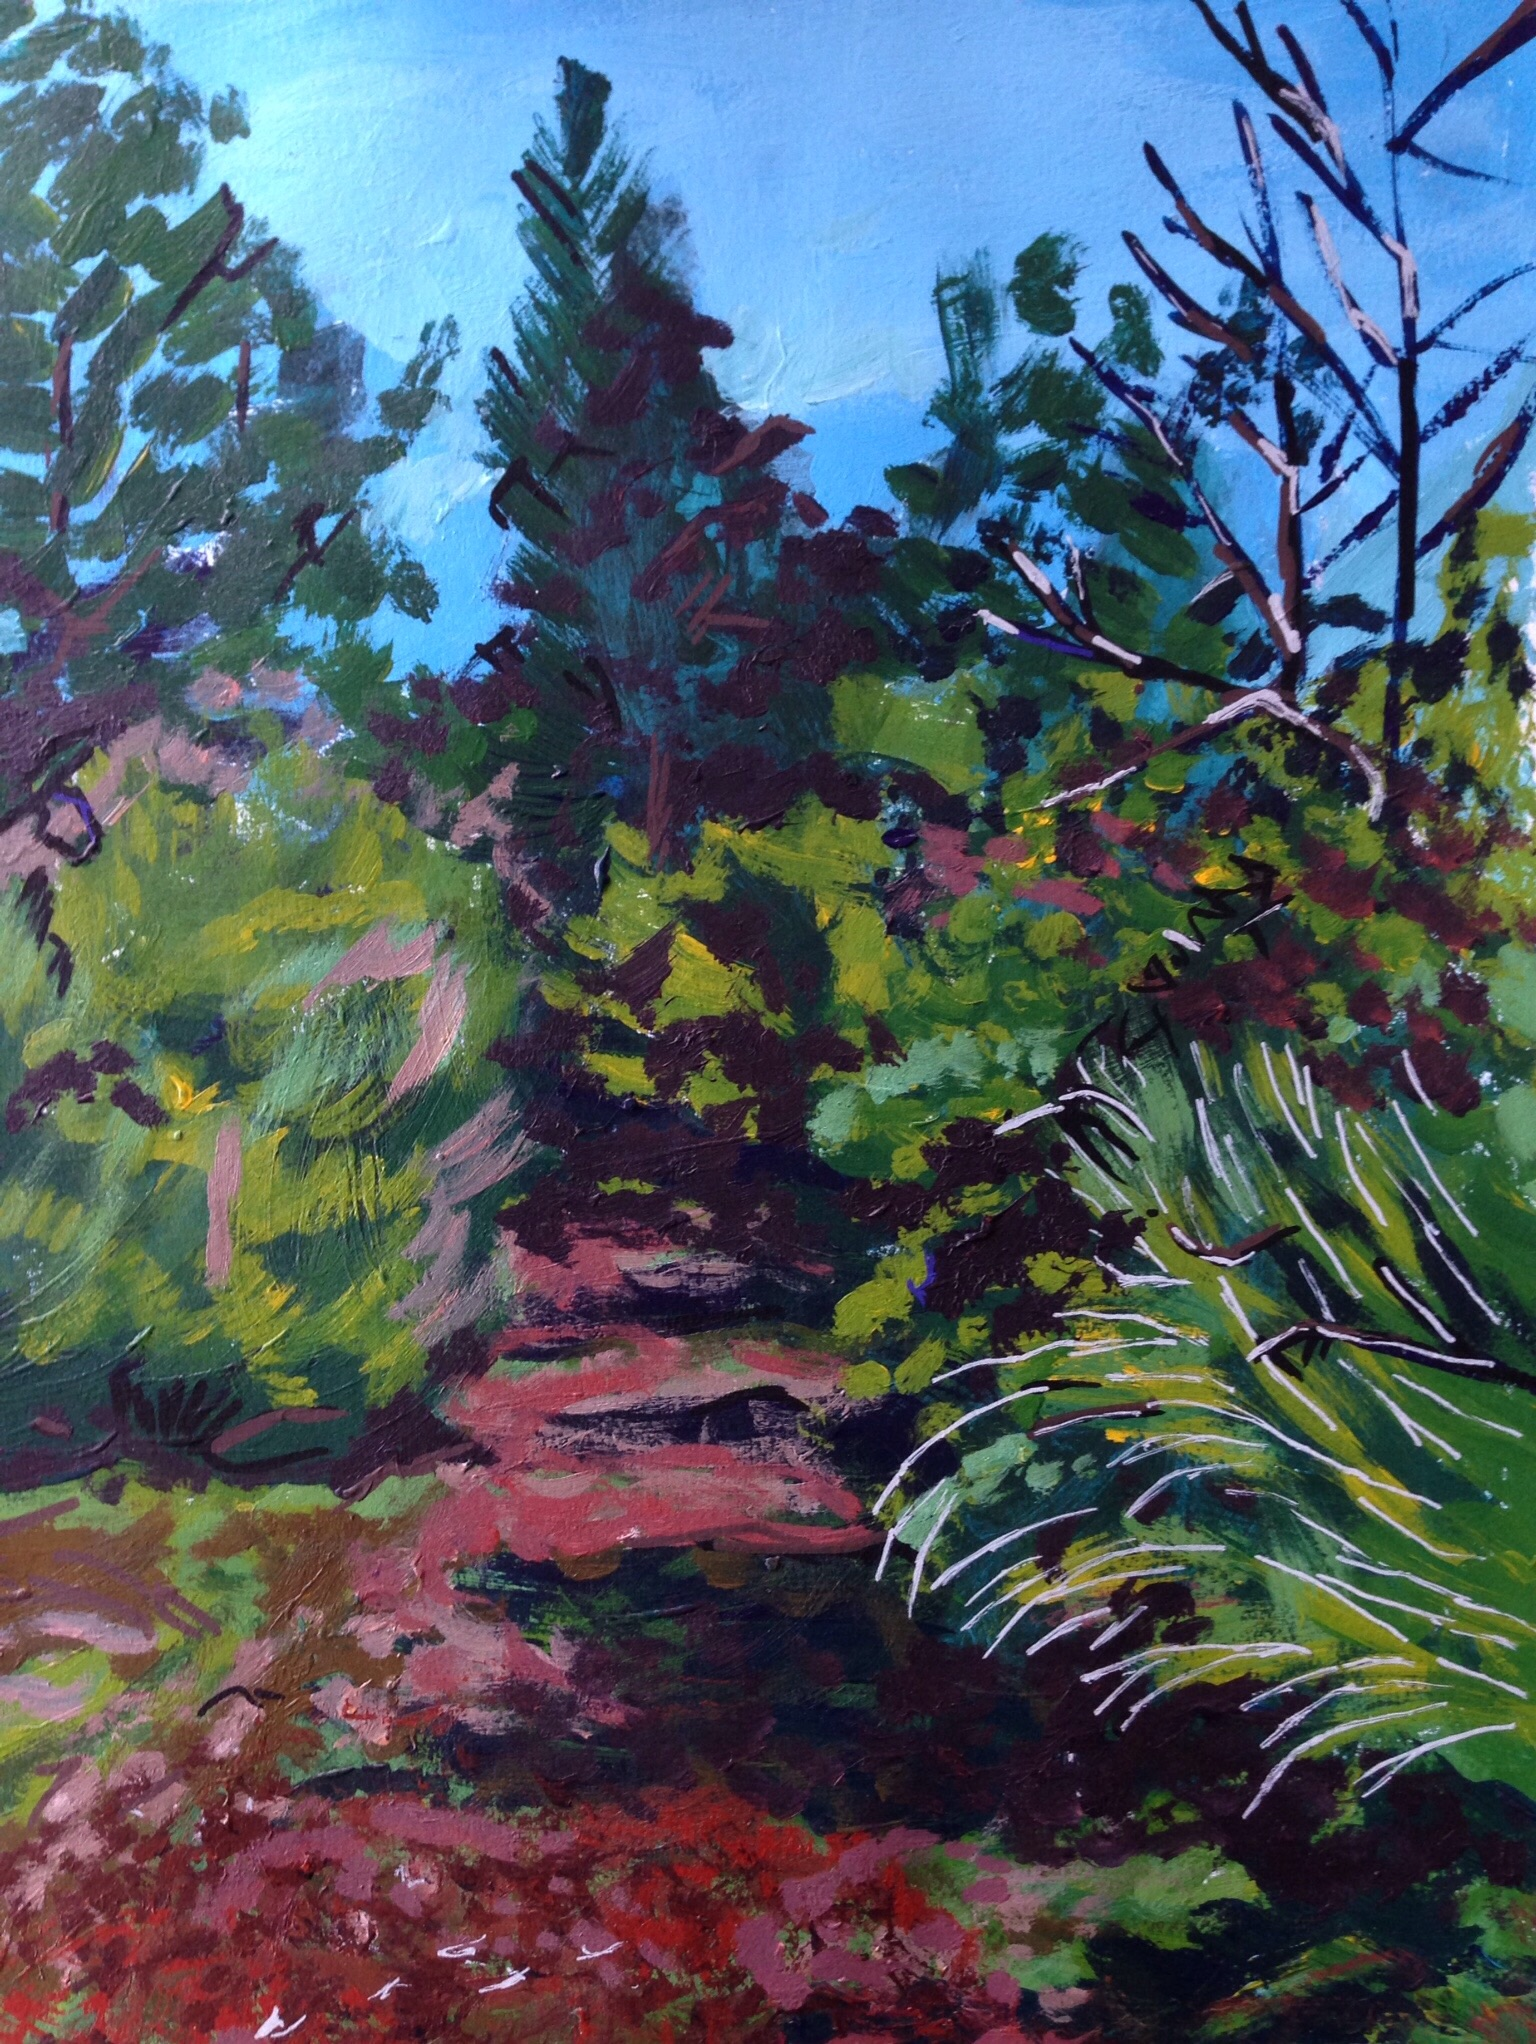 Into the Woods - P.E.I. Sketch - acrylic on Paper